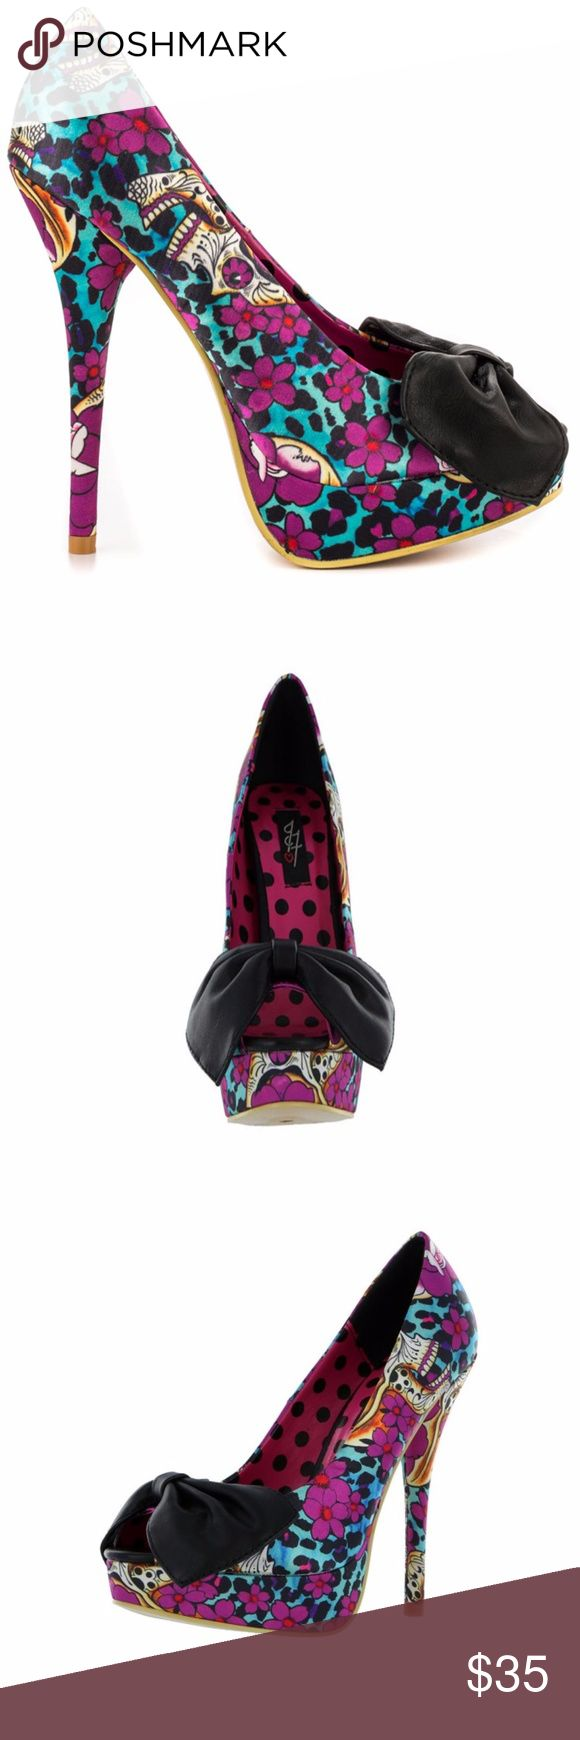 Iron Fist Kisumu Peep Toe Platform Kiss boring fashion goodbye in the Kisumu by Iron Fist. Stand out with the colorful printed fabric upper, 5 1/2 inch heel and 1 inch platform. A large black bow gathers at the front of the peep toe vamp. Brand new, never worn! Iron Fist Shoes Platforms